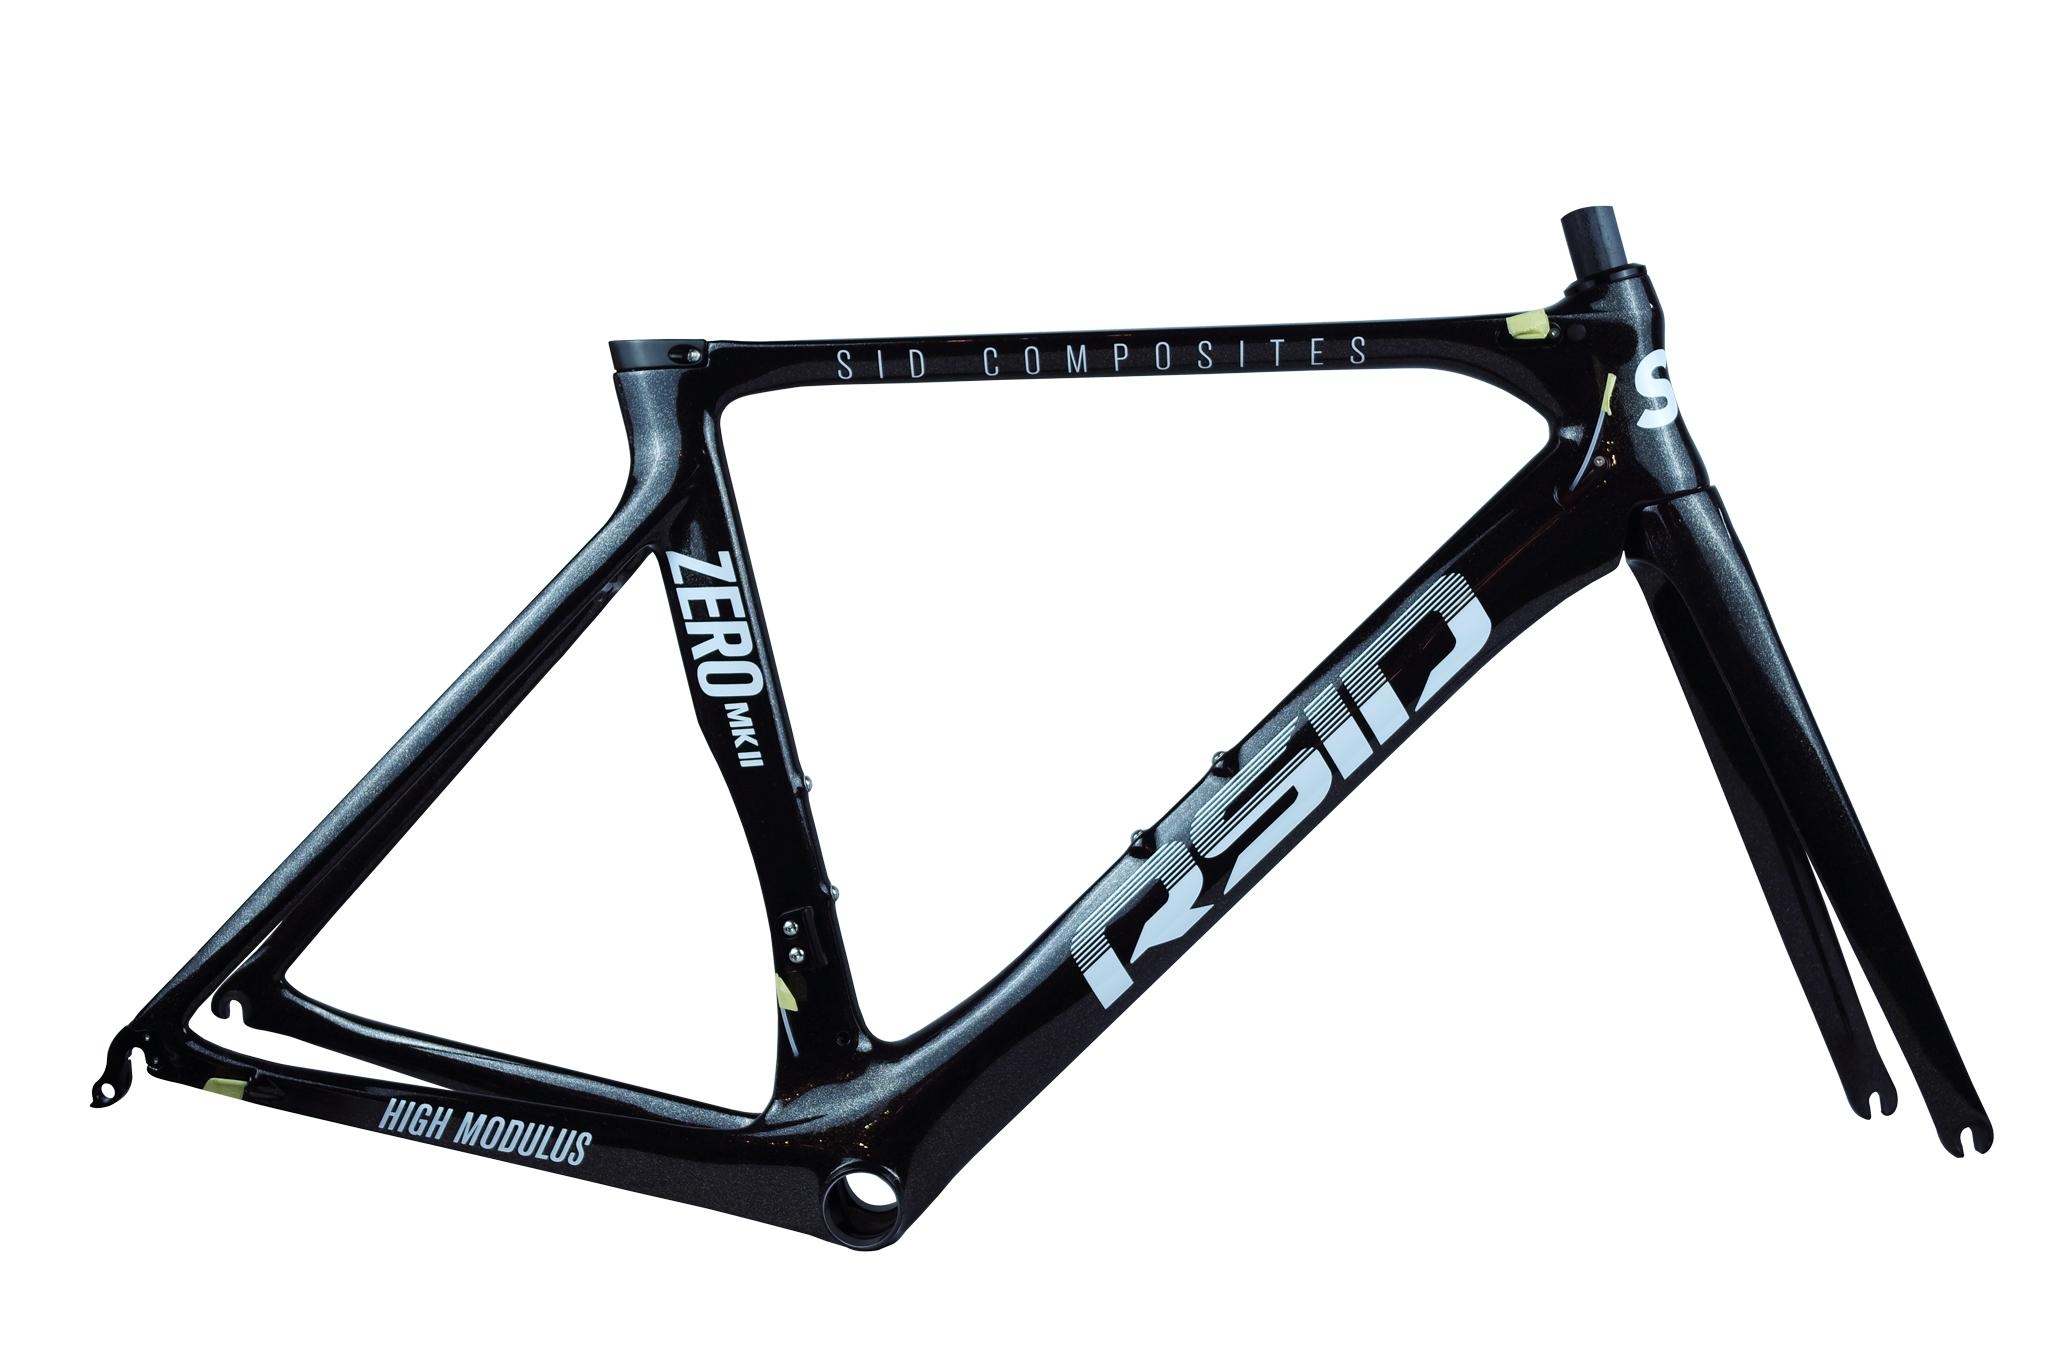 Bike Frames for sale - Cycling Frames Online Deals & Prices in